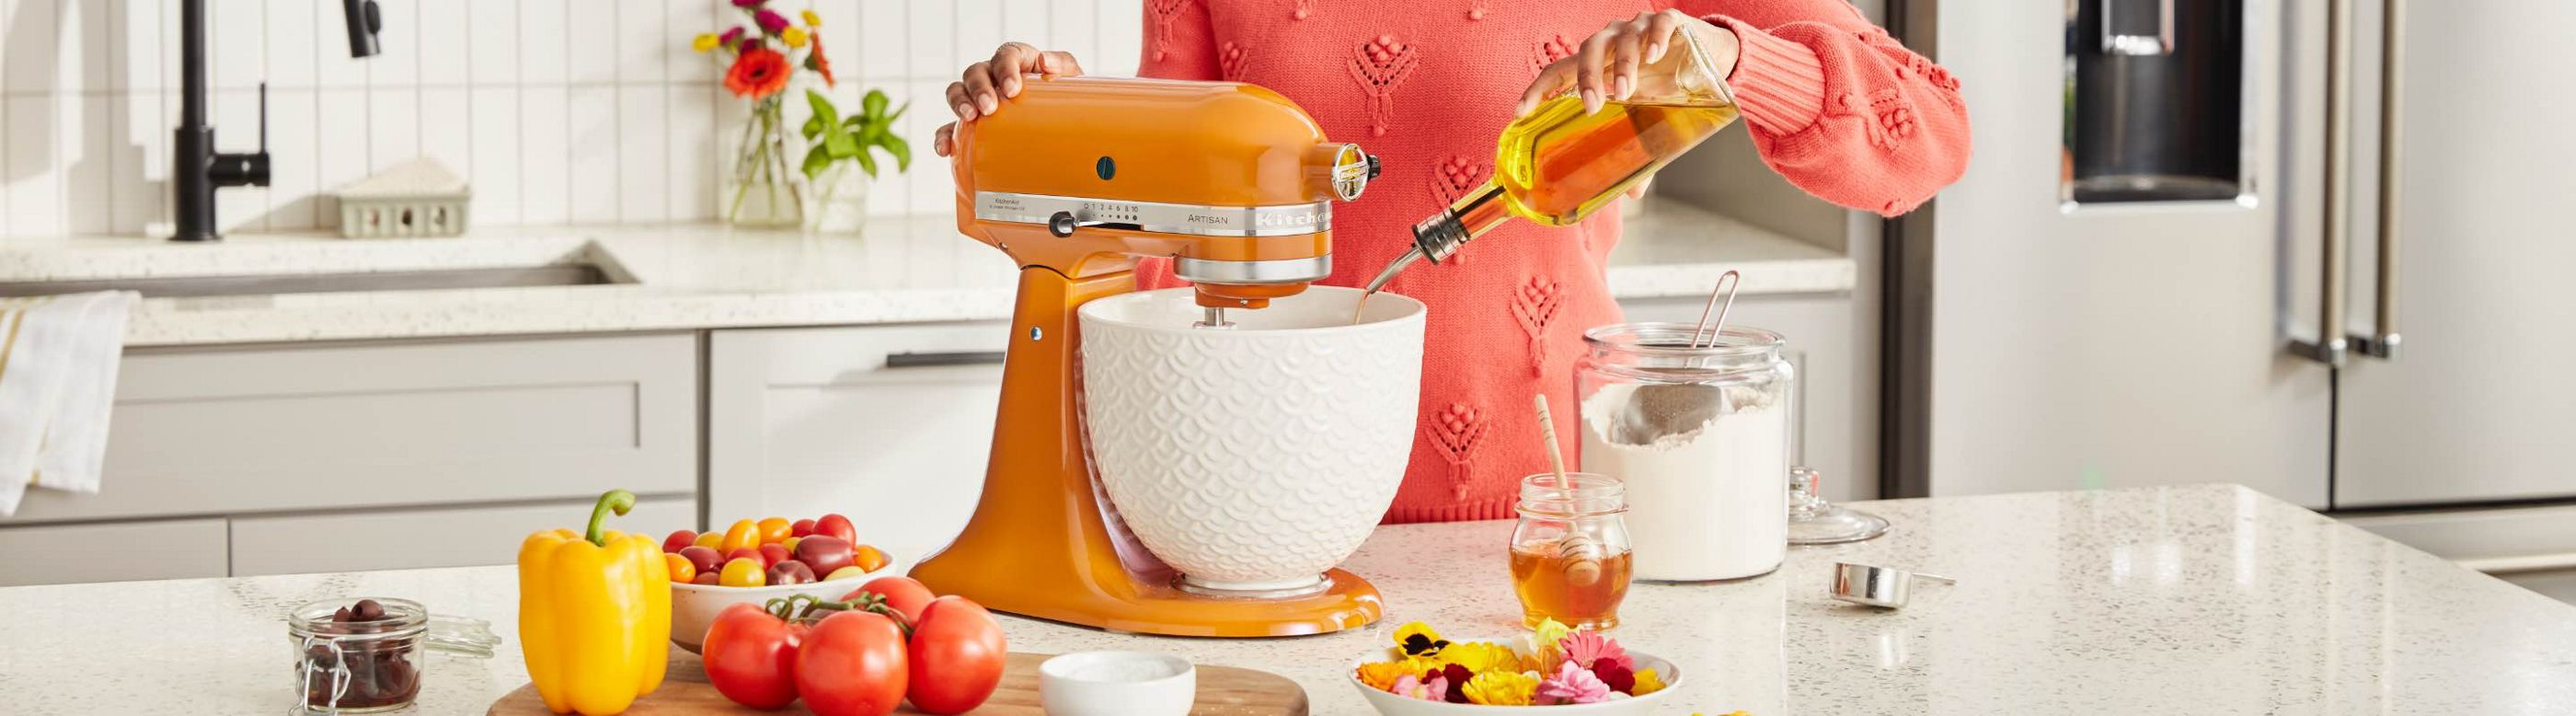 A woman pours cooking oil into the bowl of a KitchenAid stand mixer in Honey colour. On a cutting board next to the stand mixer are a bowl of cherry tomatoes, tomatoes on the vine, a yellow pepper and a bowl of salt. Also on the counter are a bowl of colourful flowers, a jar of honey, a glass container of flour with a measuring cup.